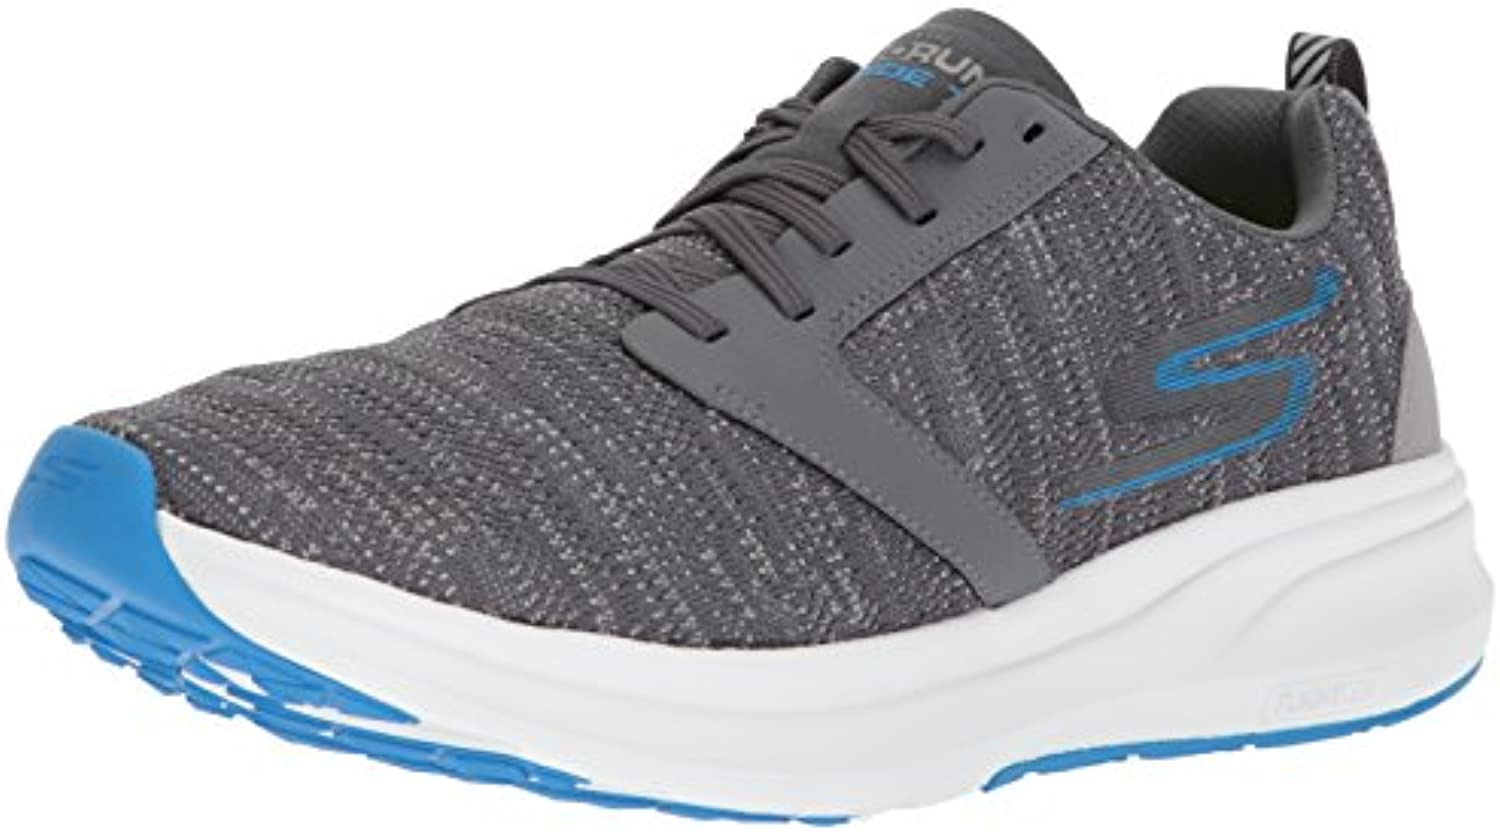 Skechers GO Run Ride 7 Laufschuhe   SS18 48.5